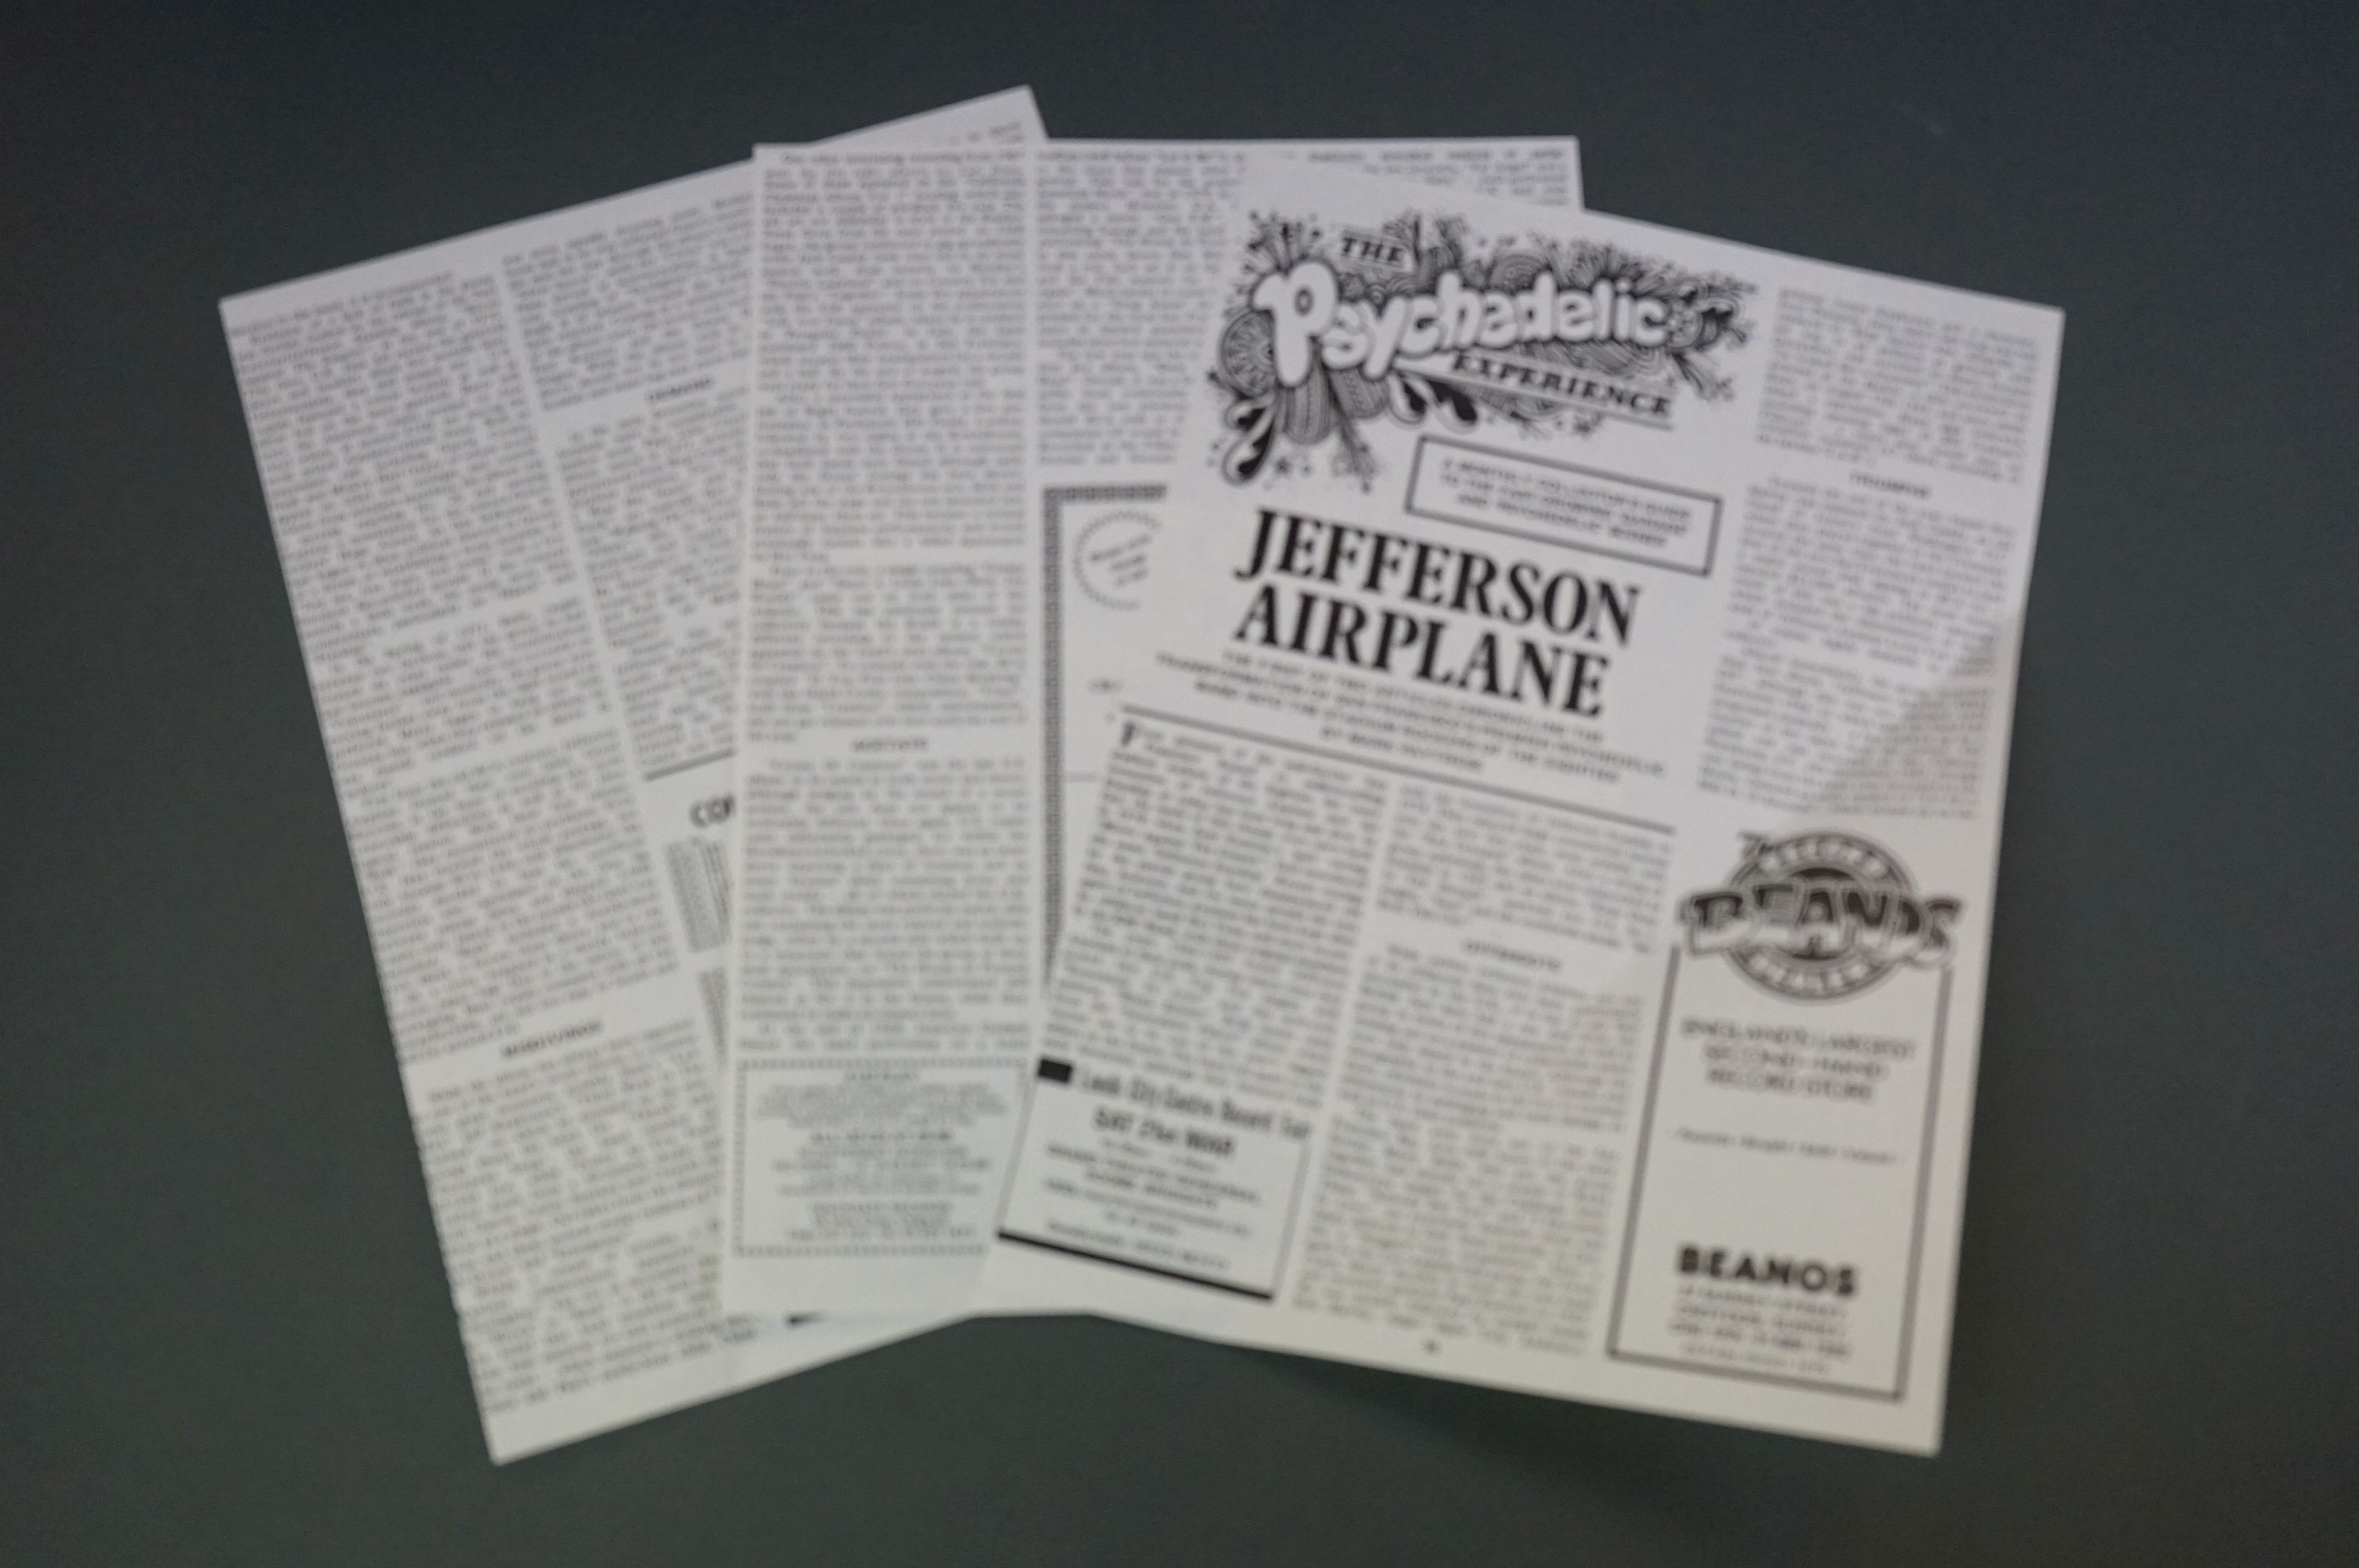 Vinyl - 10 Jefferson Airplane LPs to include Surrealistia Pillow / After Bathing at Baxter's (89301) - Image 16 of 16